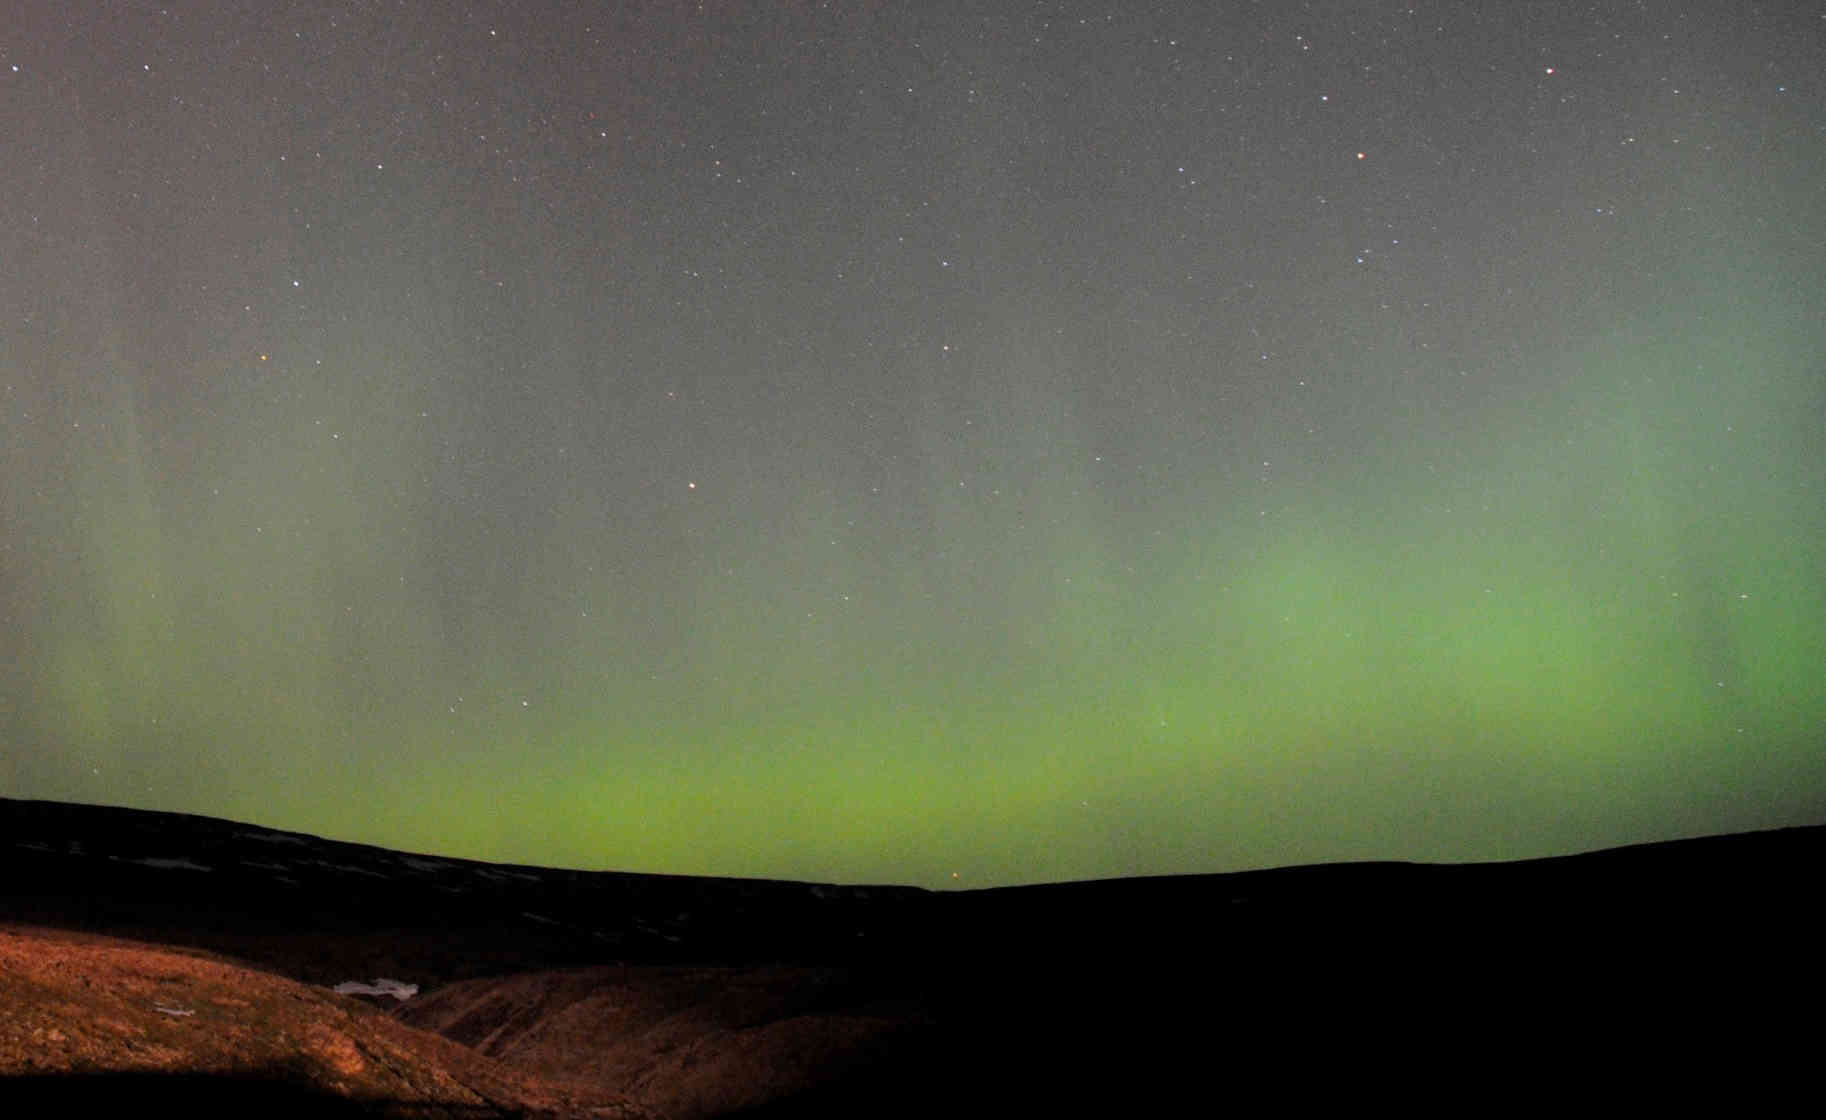 Image of the Northern Lights in a landscape